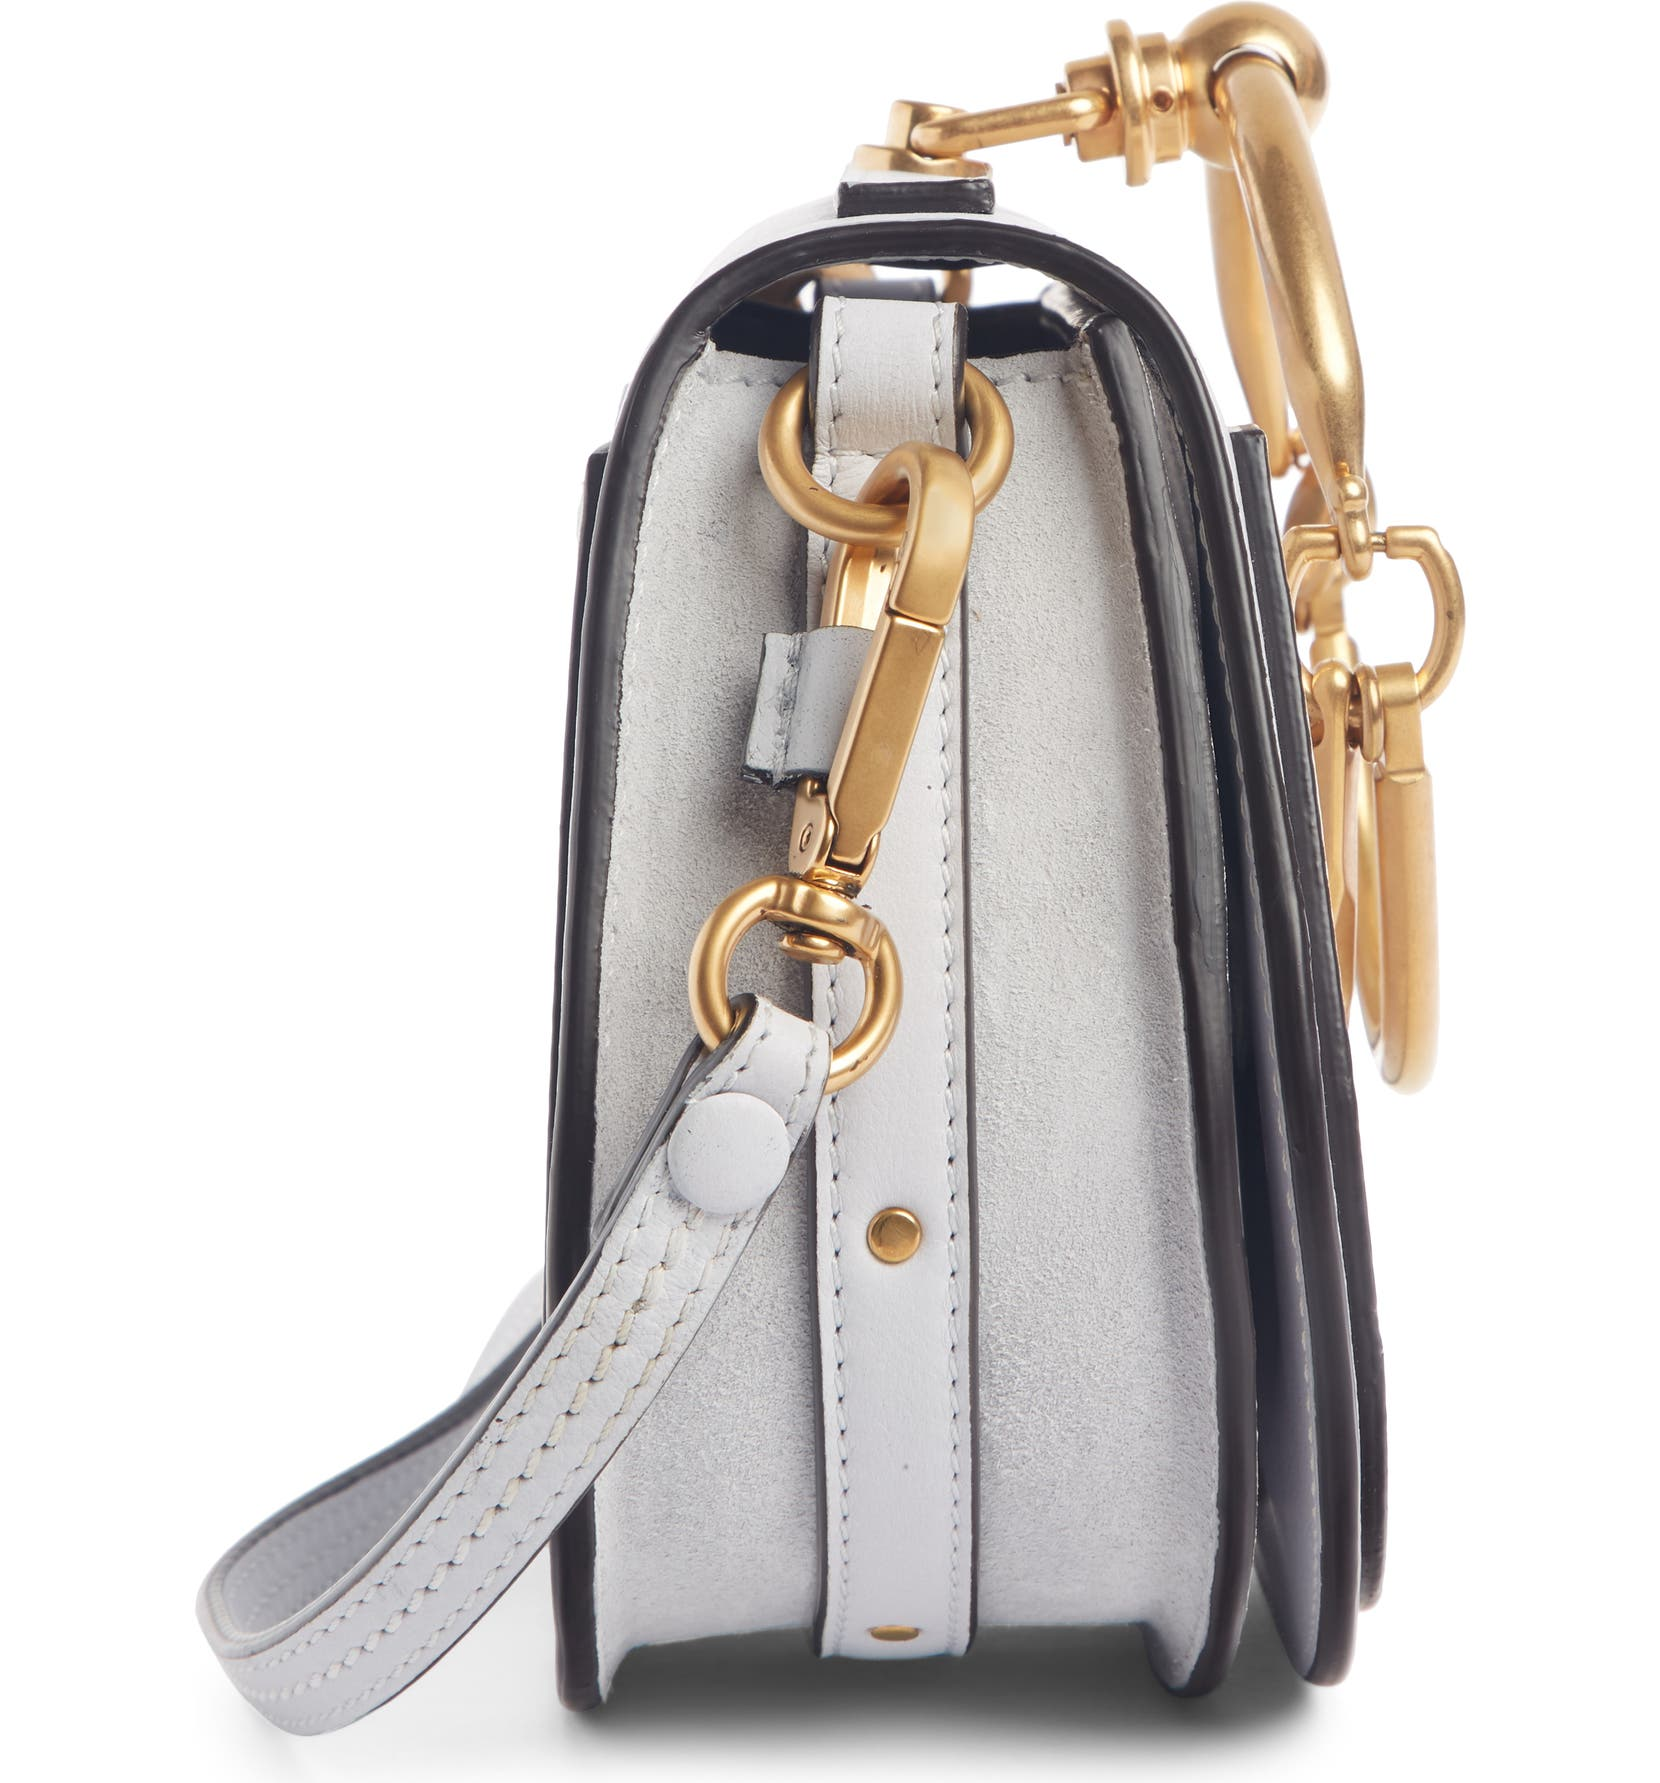 921ee261ba93 Chloé Small Nile Bracelet Leather Crossbody Bag